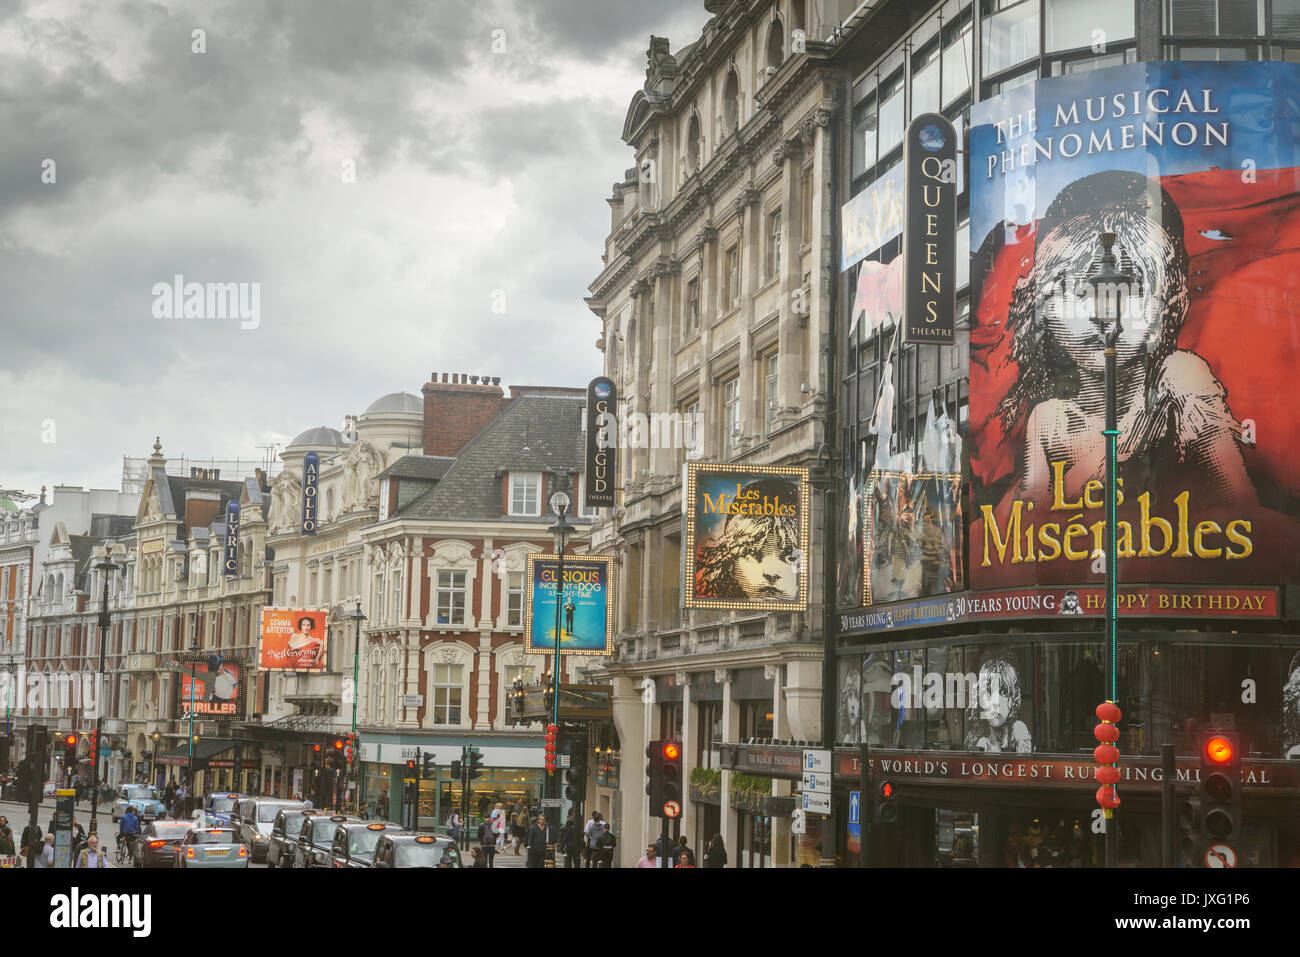 Shaftesbury Avenue - Theater district in West-End London, England - Stock Image